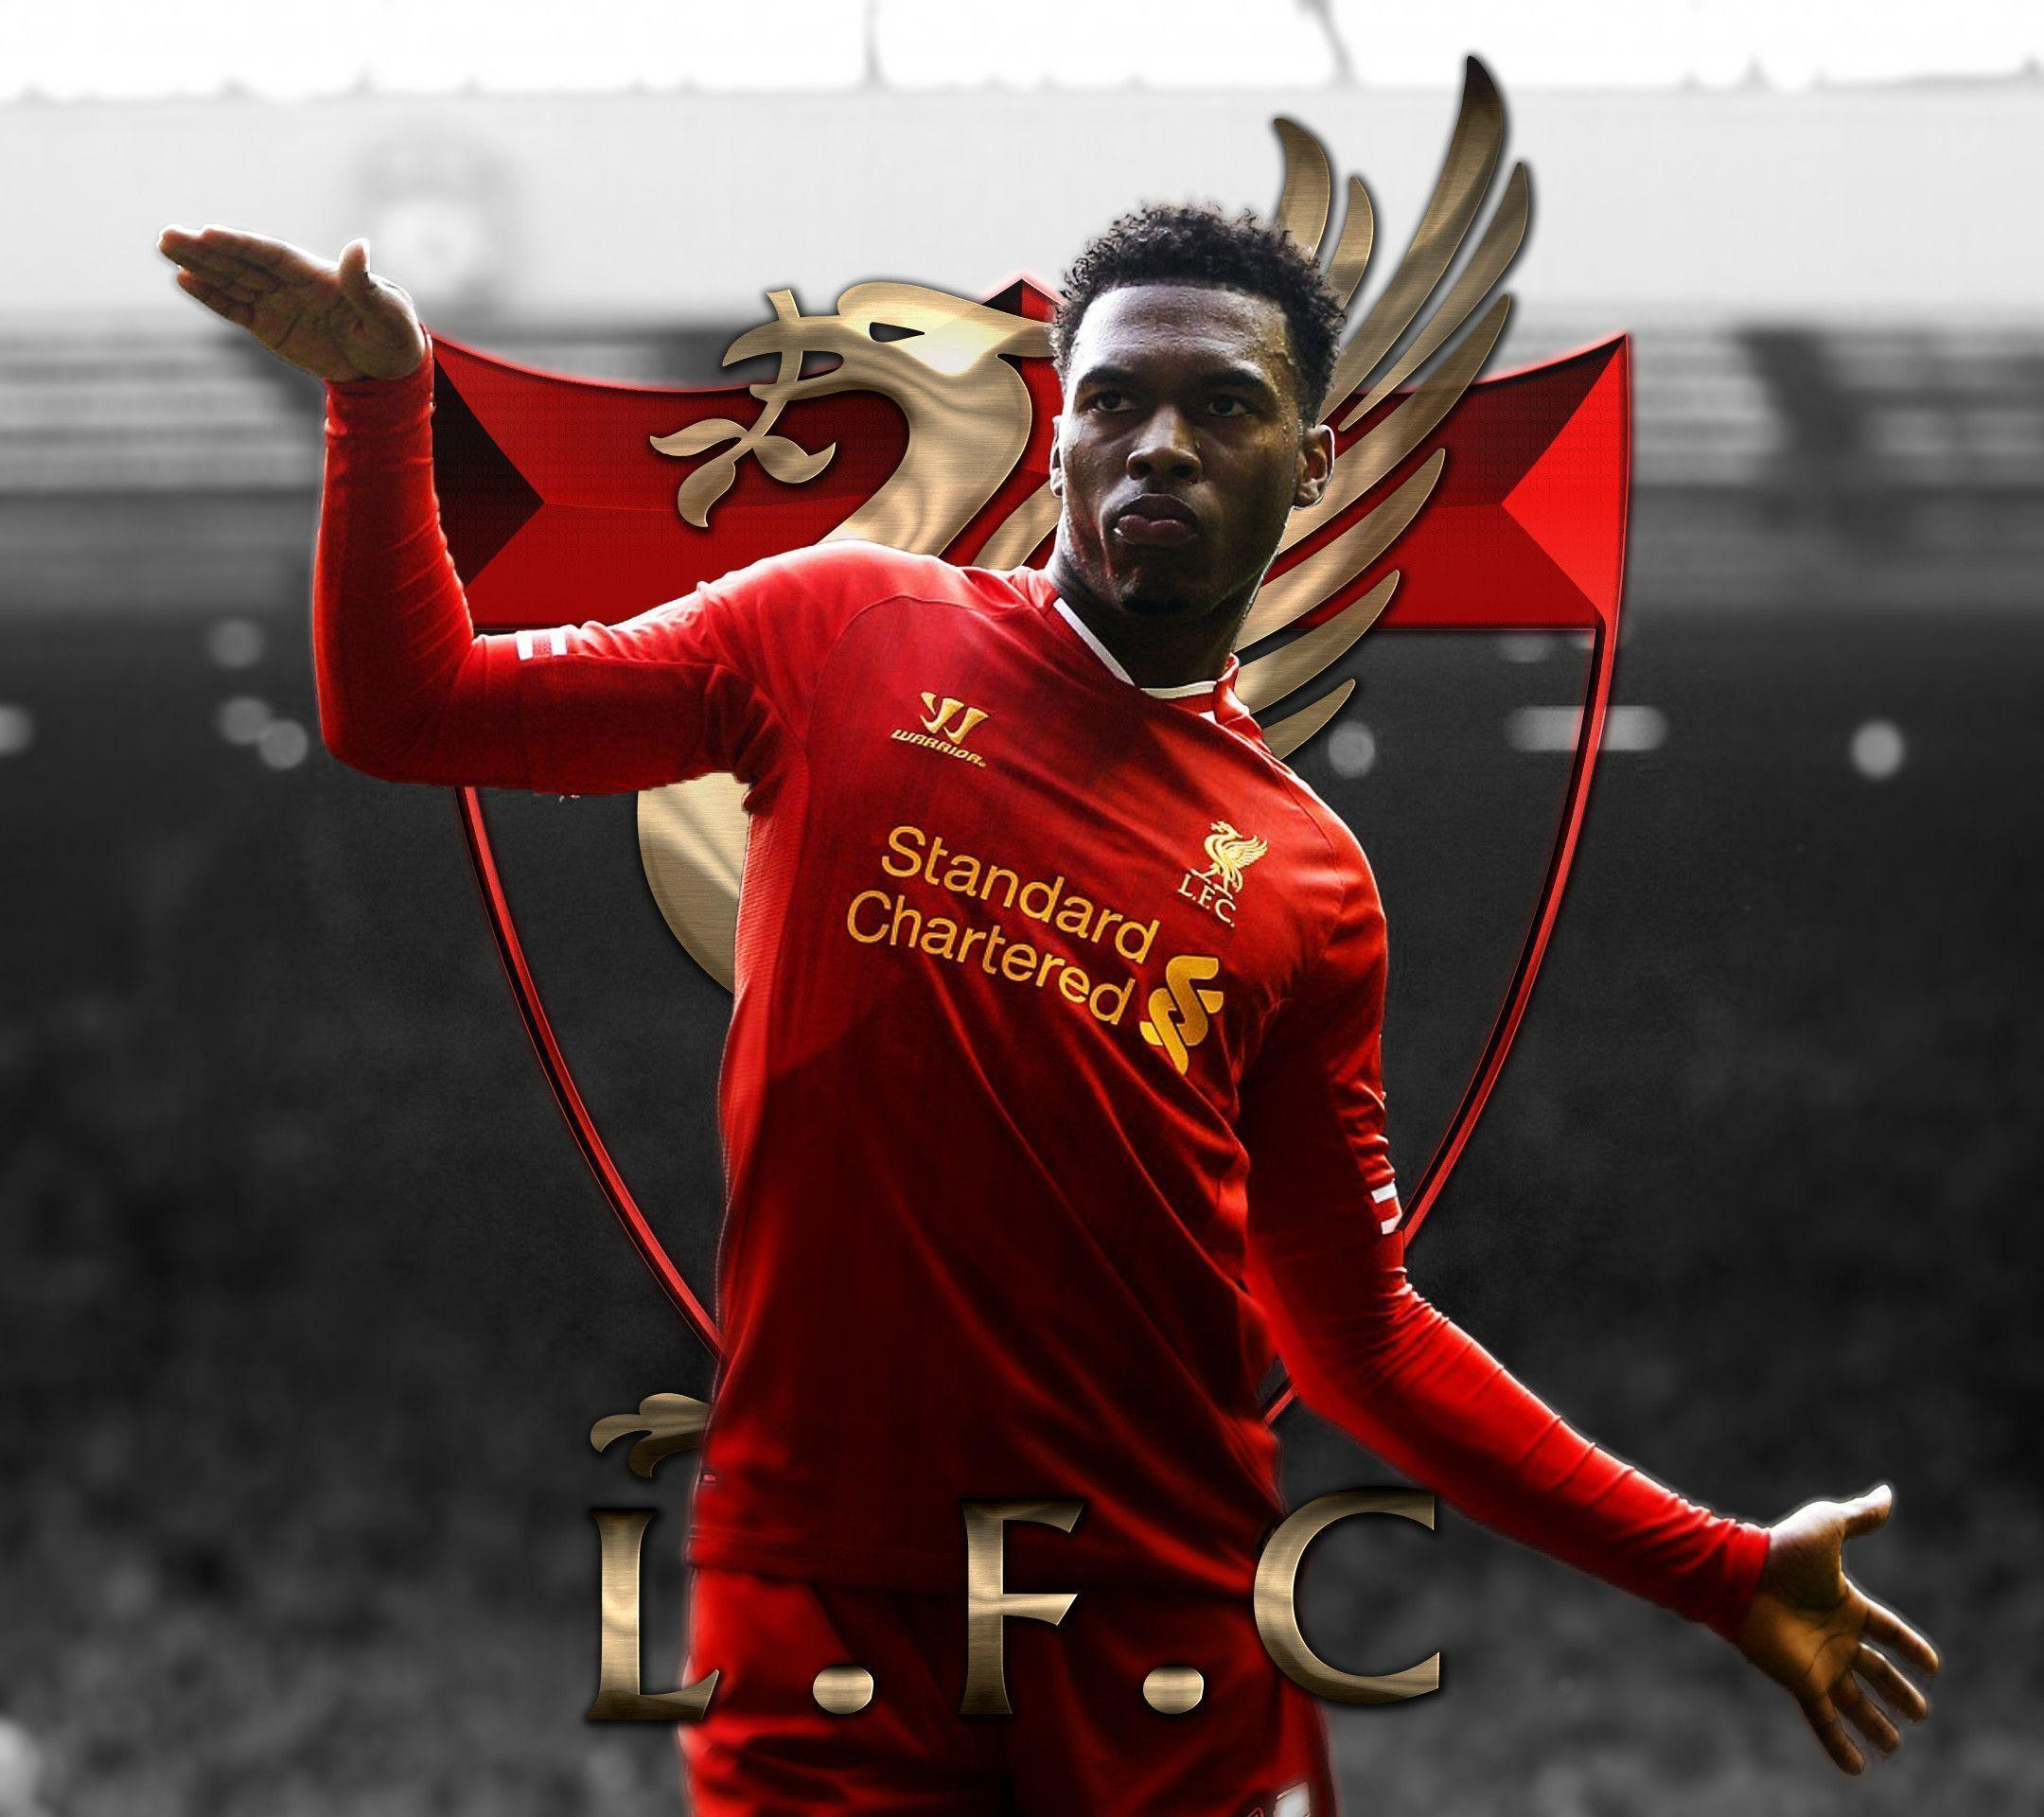 Liverpool Wallpapers 2016 2160x1920